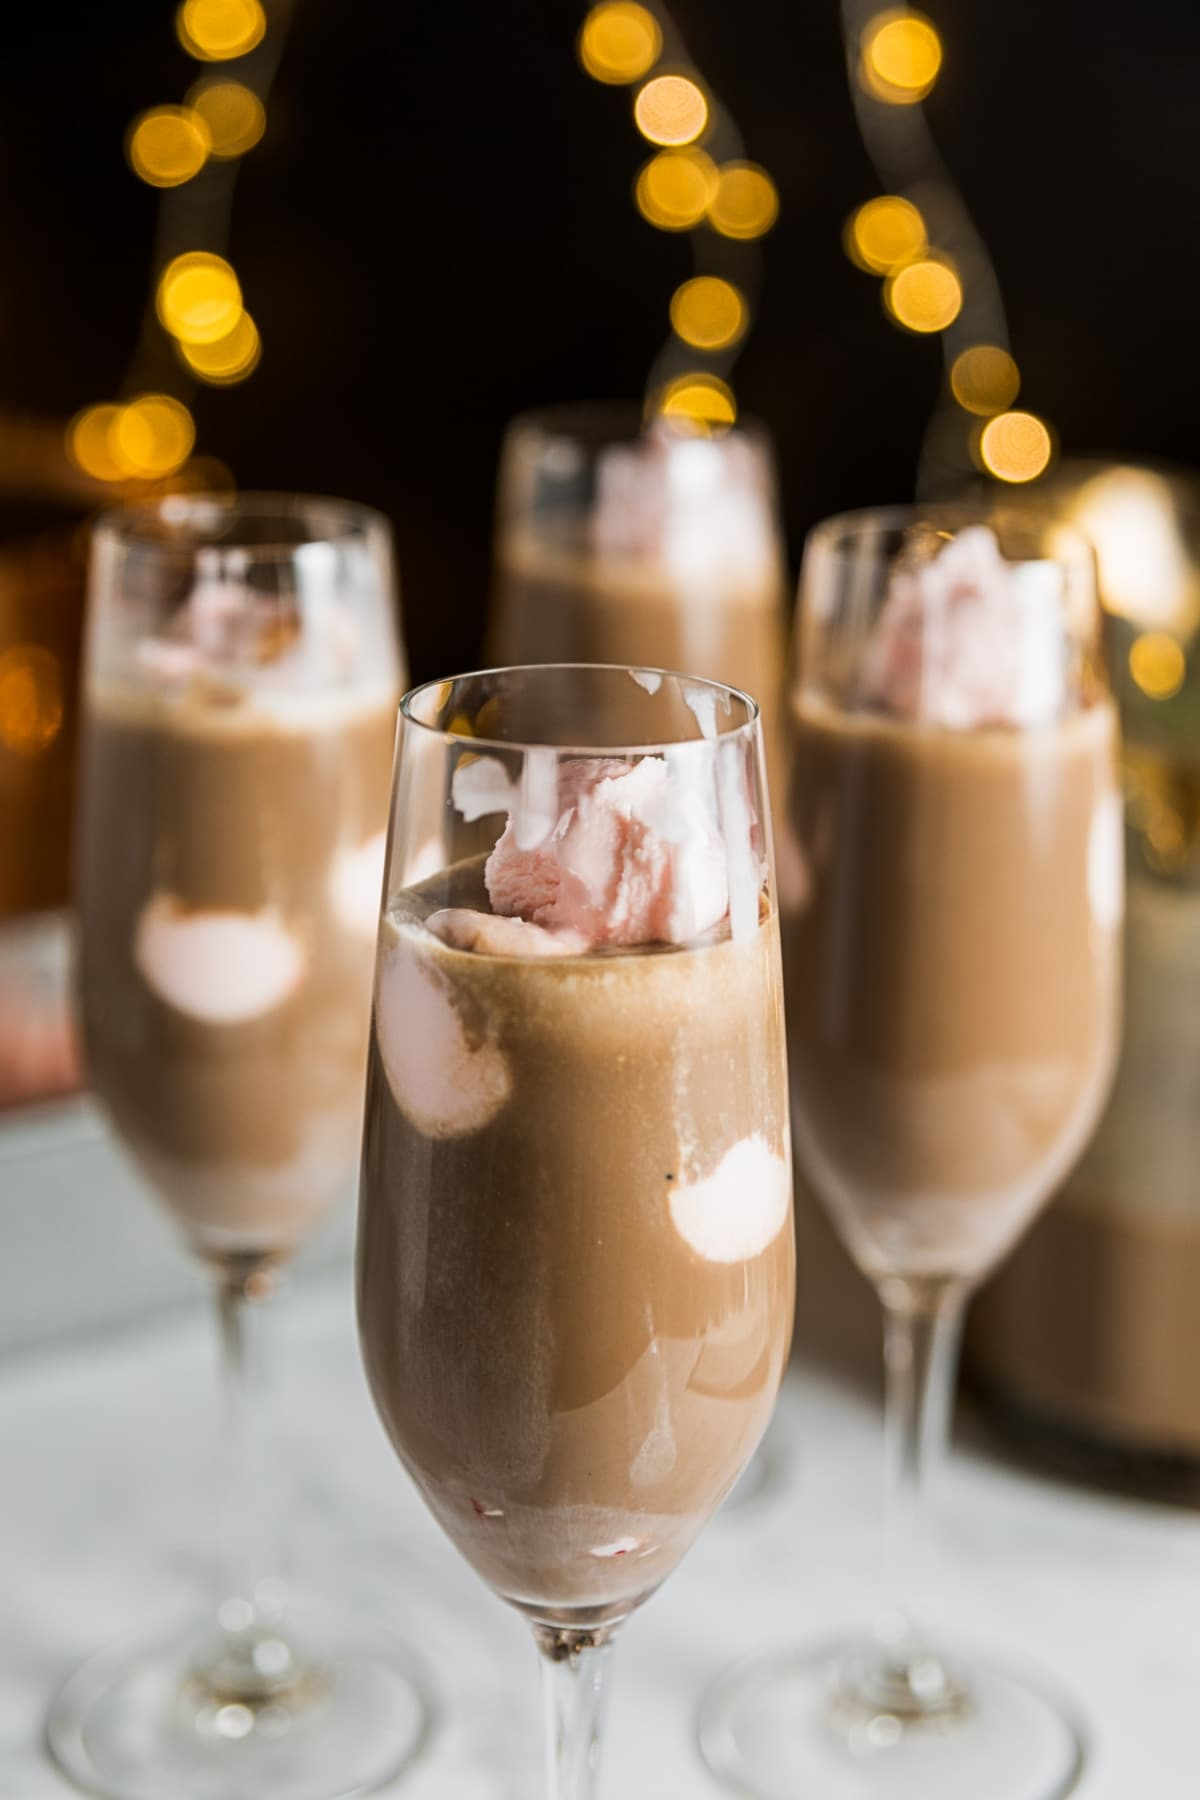 Four champagne glasses filled with chocolate mixture with pink ice cream floating all with black background with twinkling Christmas lights